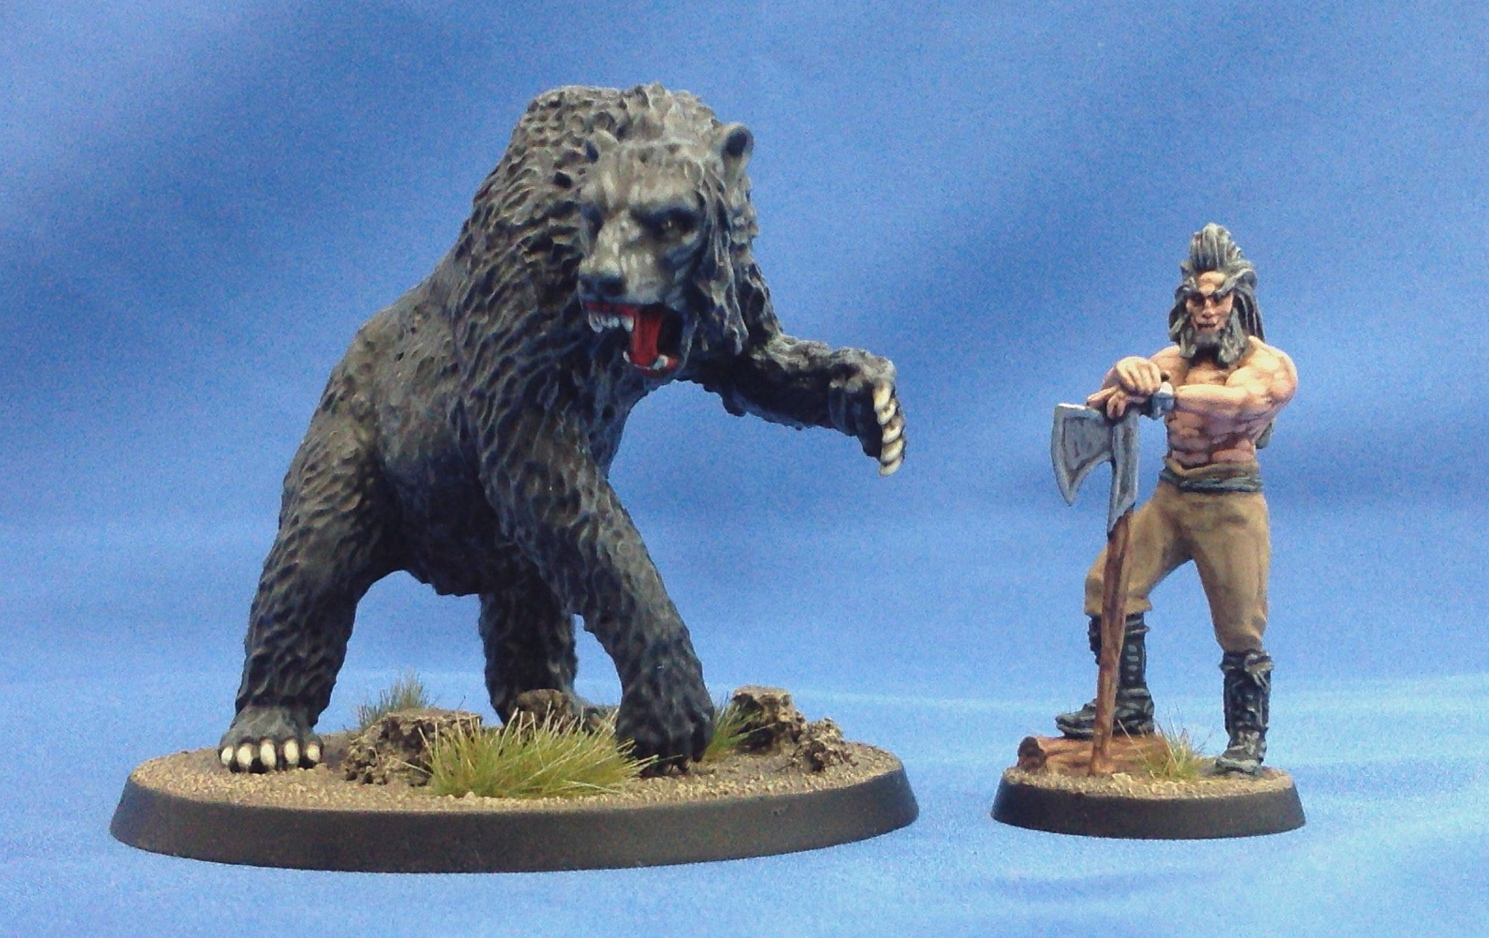 Enrico's Beorn is ready to crush any goblin monarch.